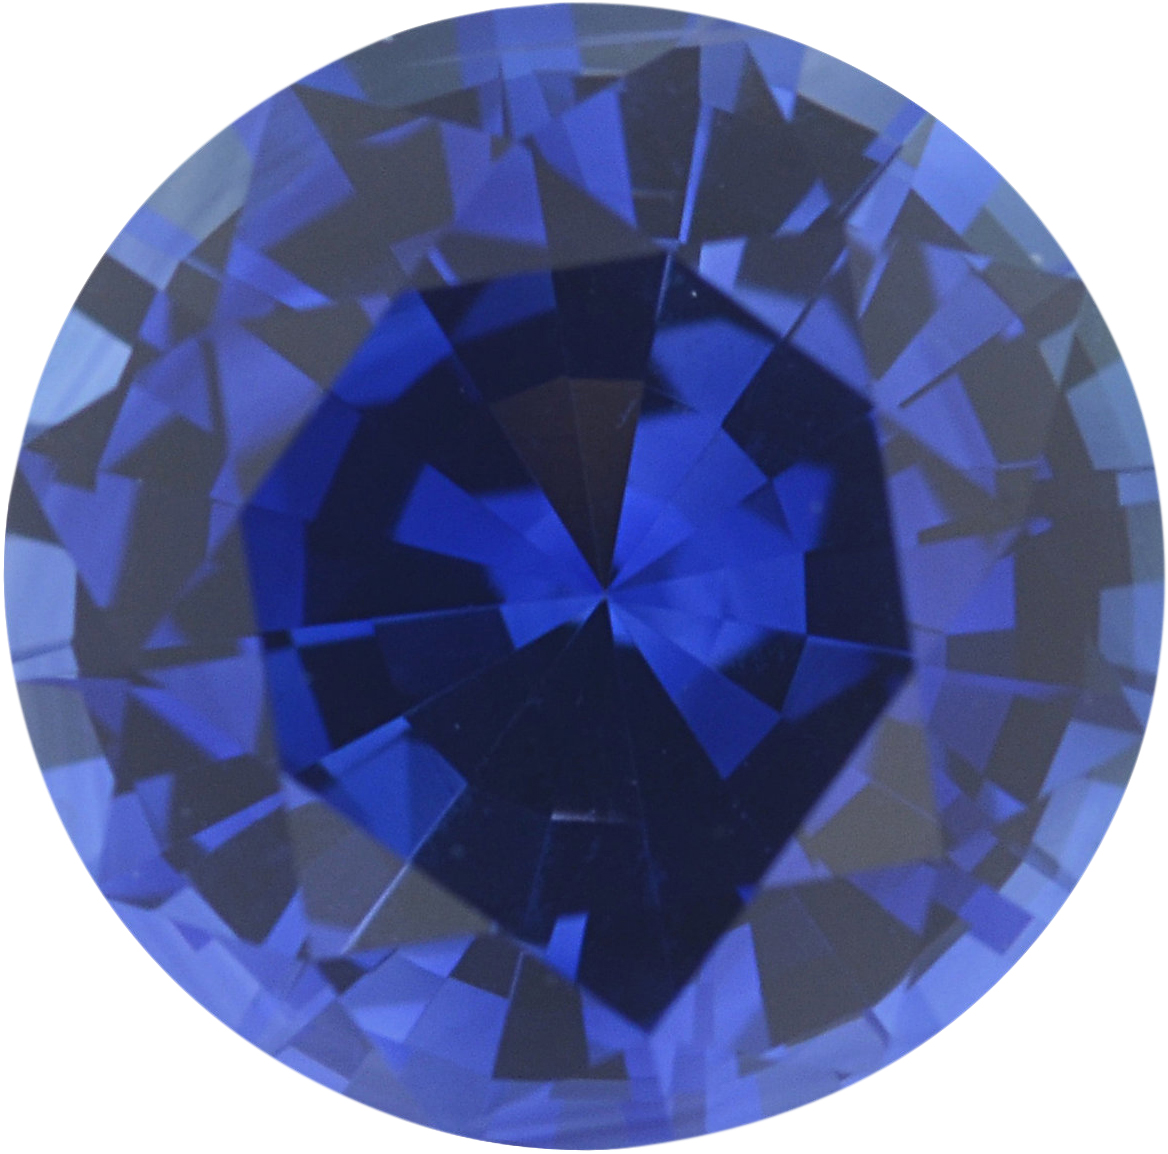 0.98 carats Blue Loose Sapphire Gemstone in Round Cut, 6.11 mm